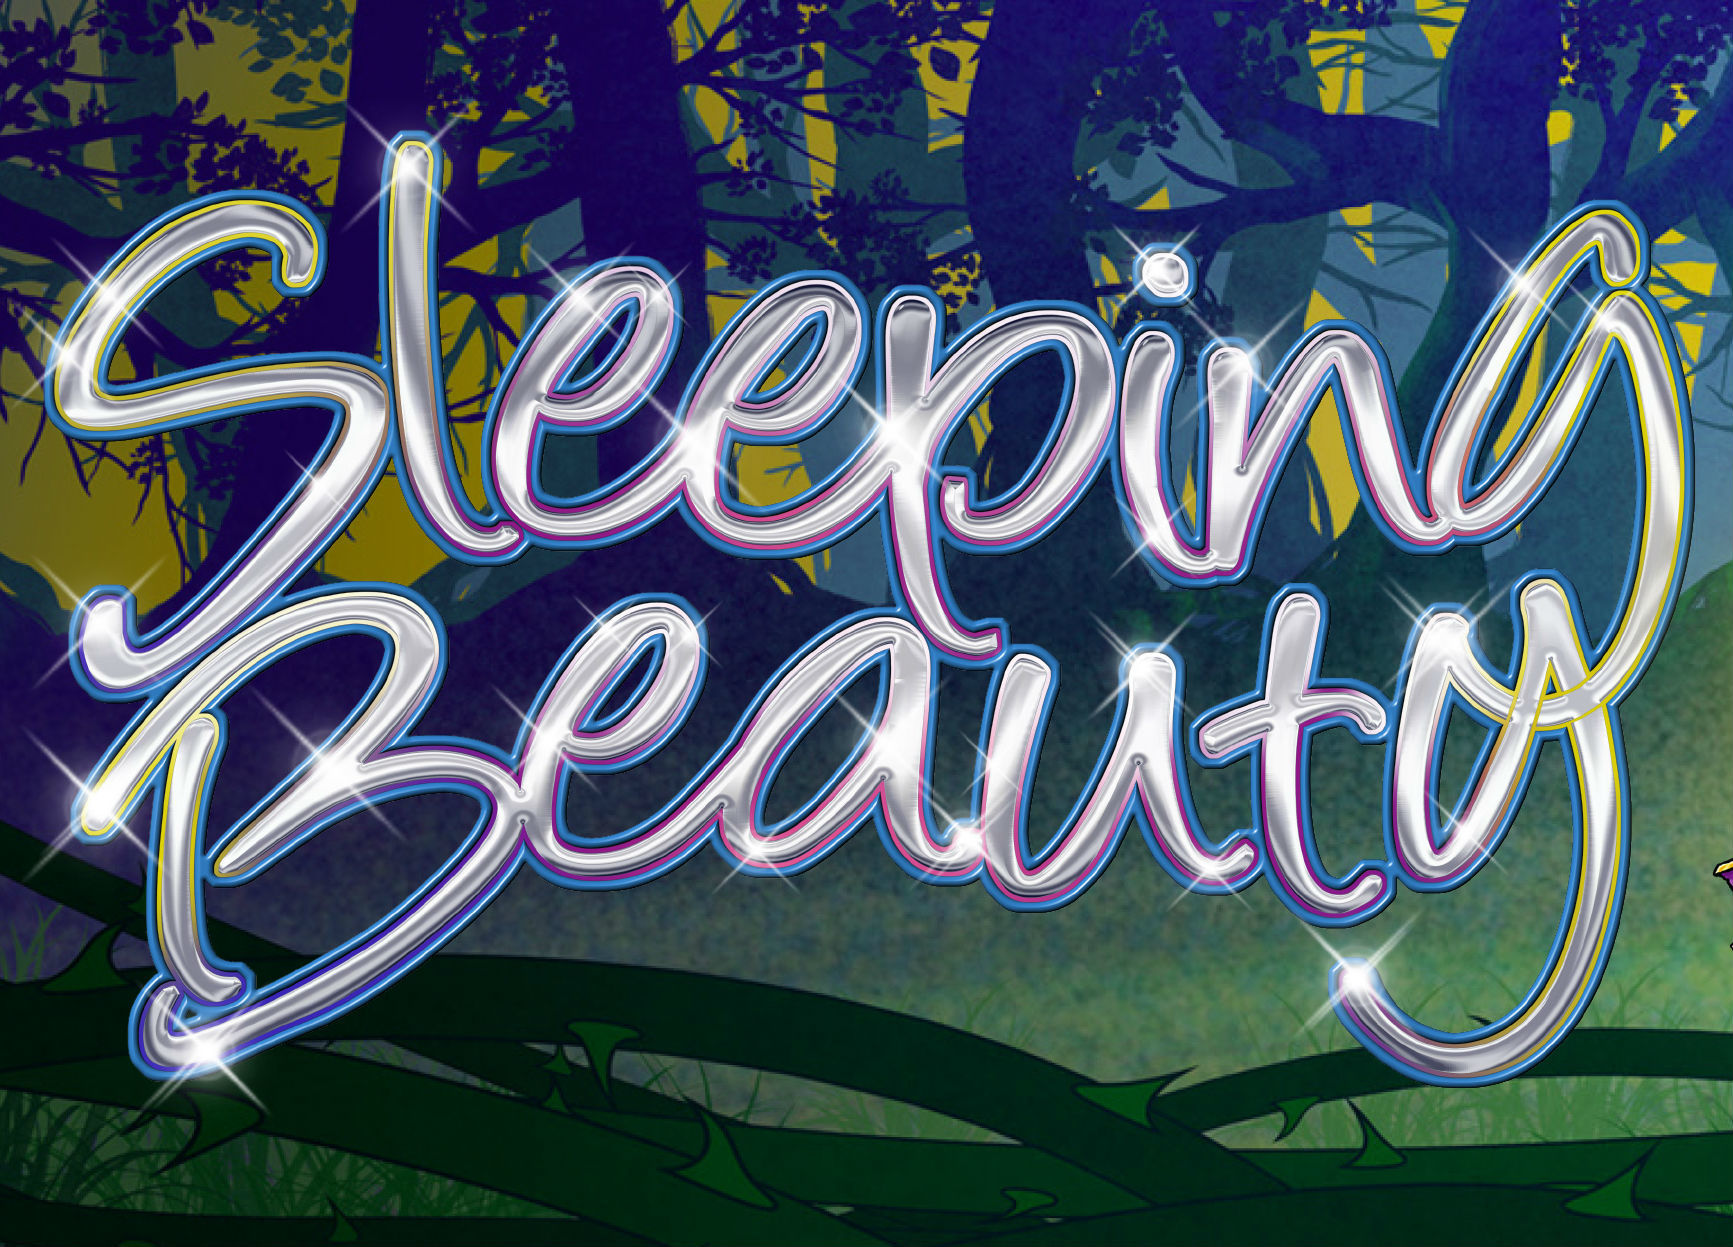 'Sleeping Beauty' at Greenwich Theatre